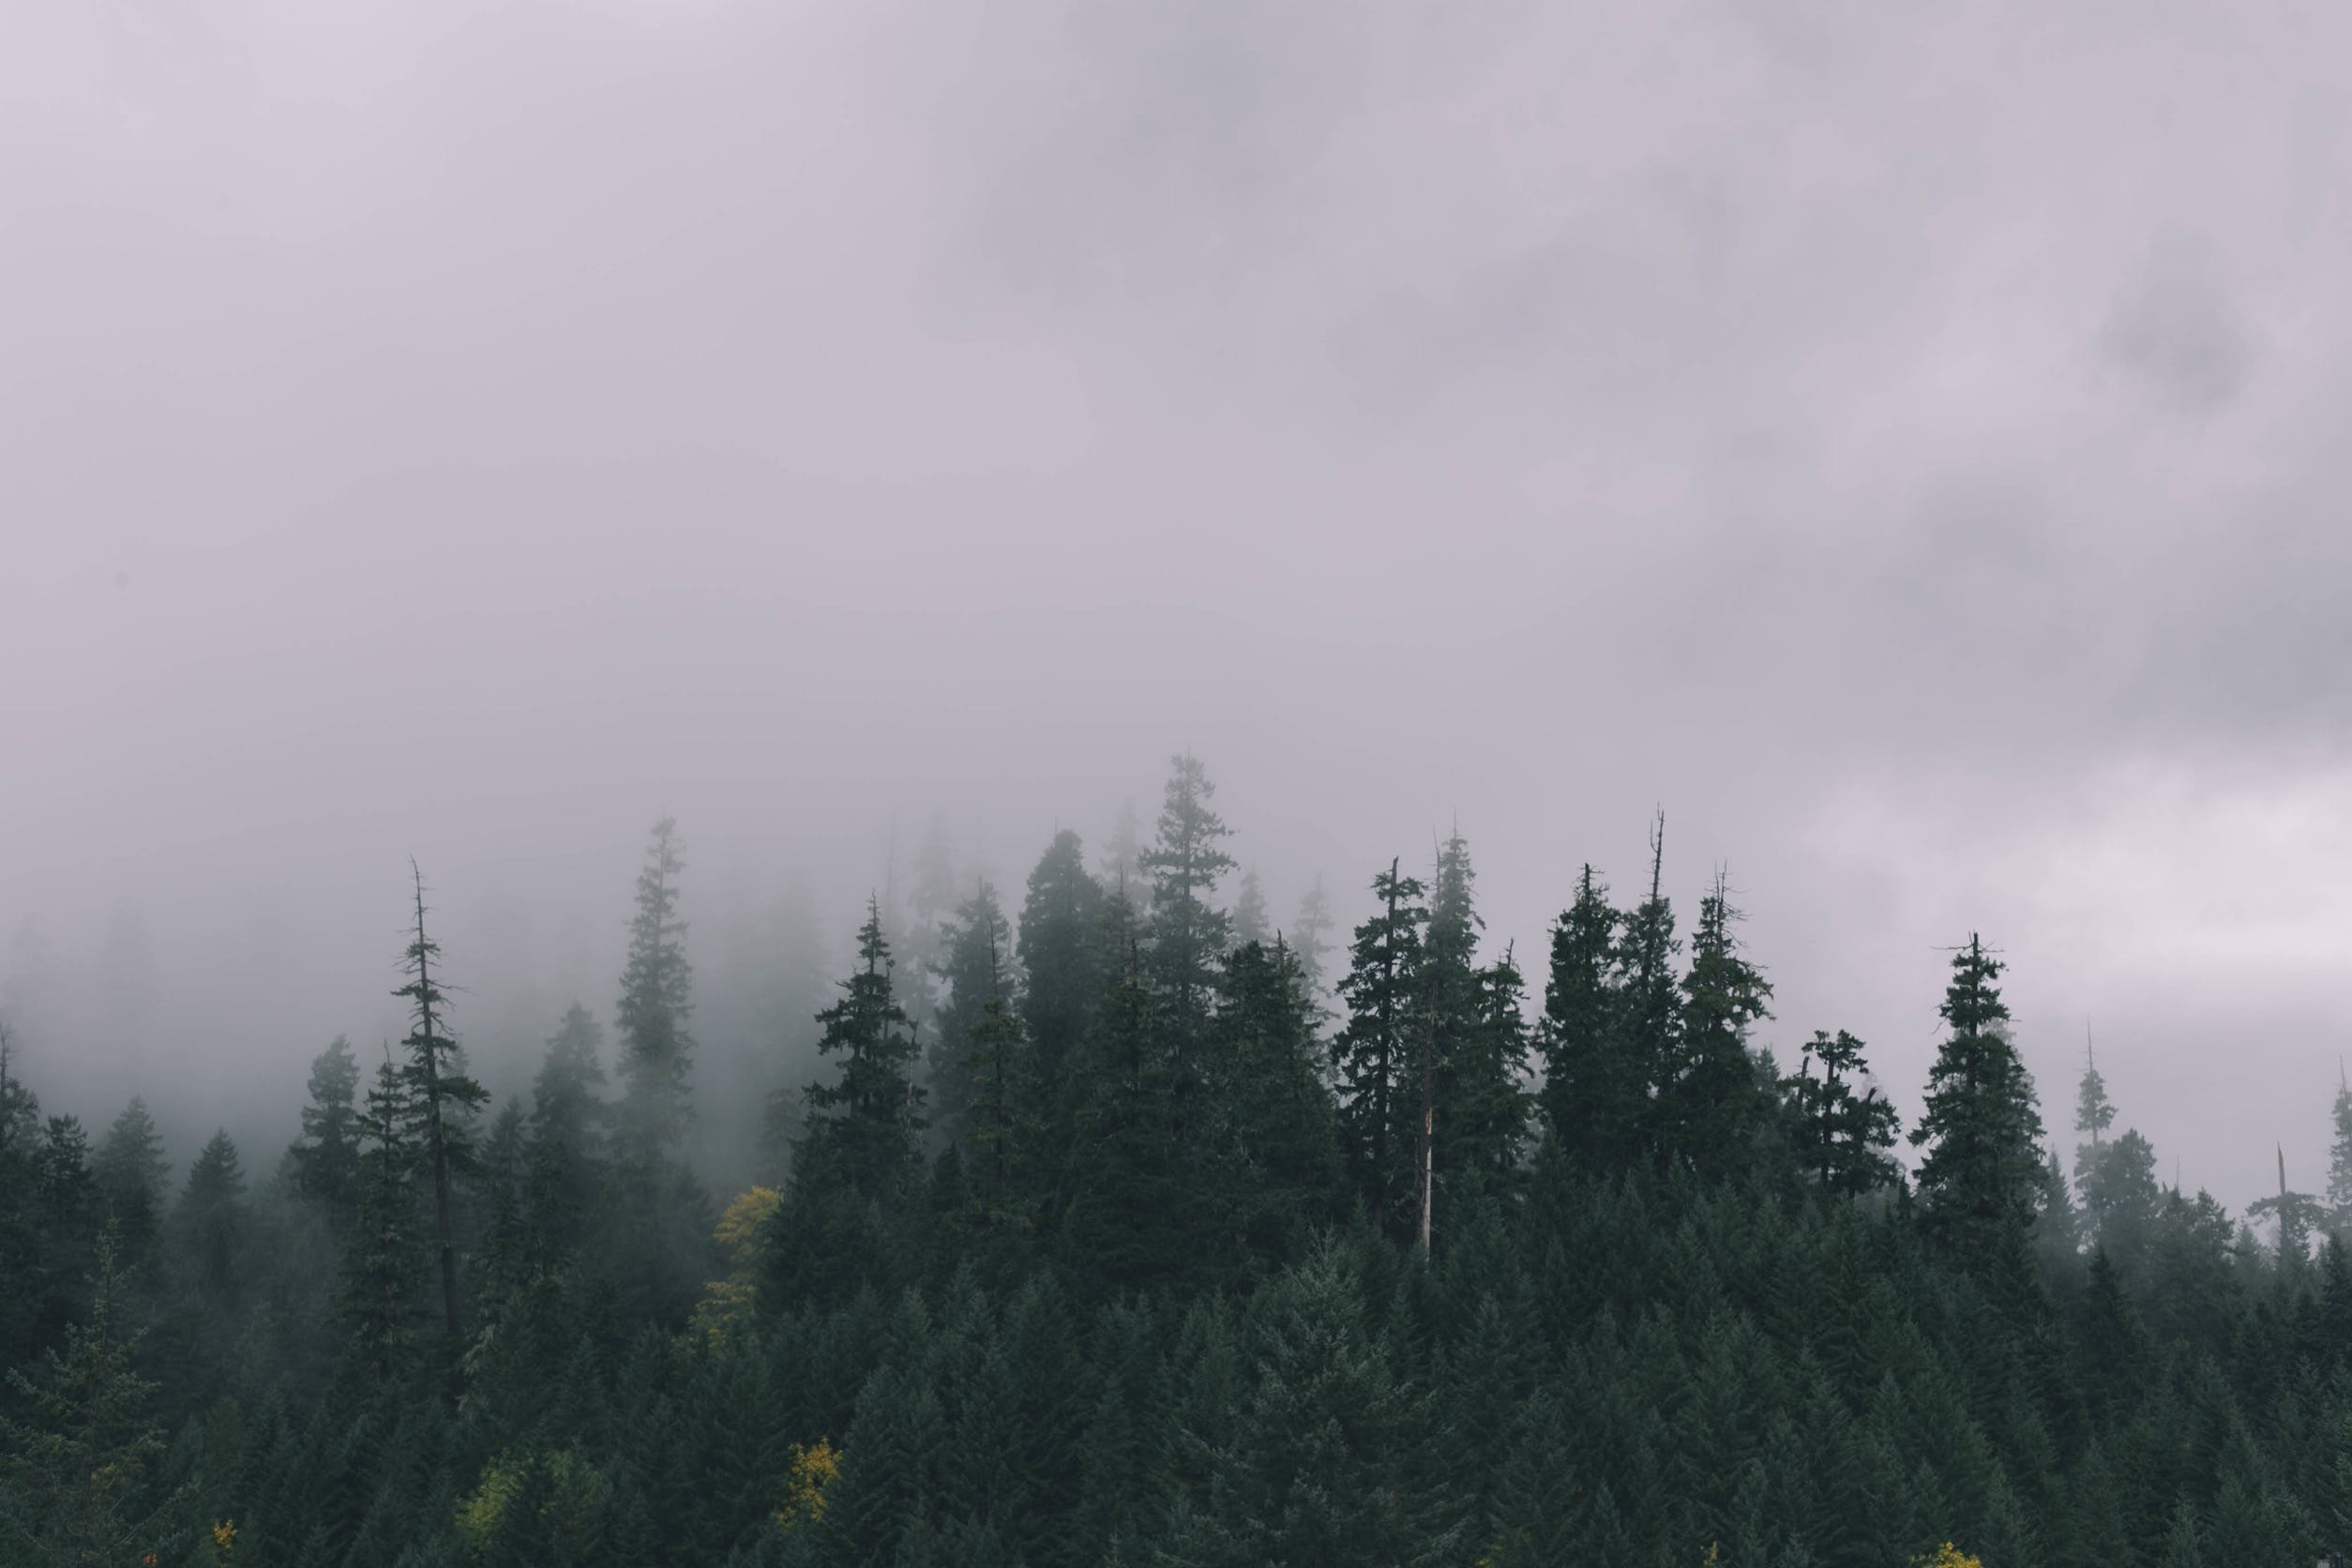 Free stock photo of nature, cloudy, forest, trees